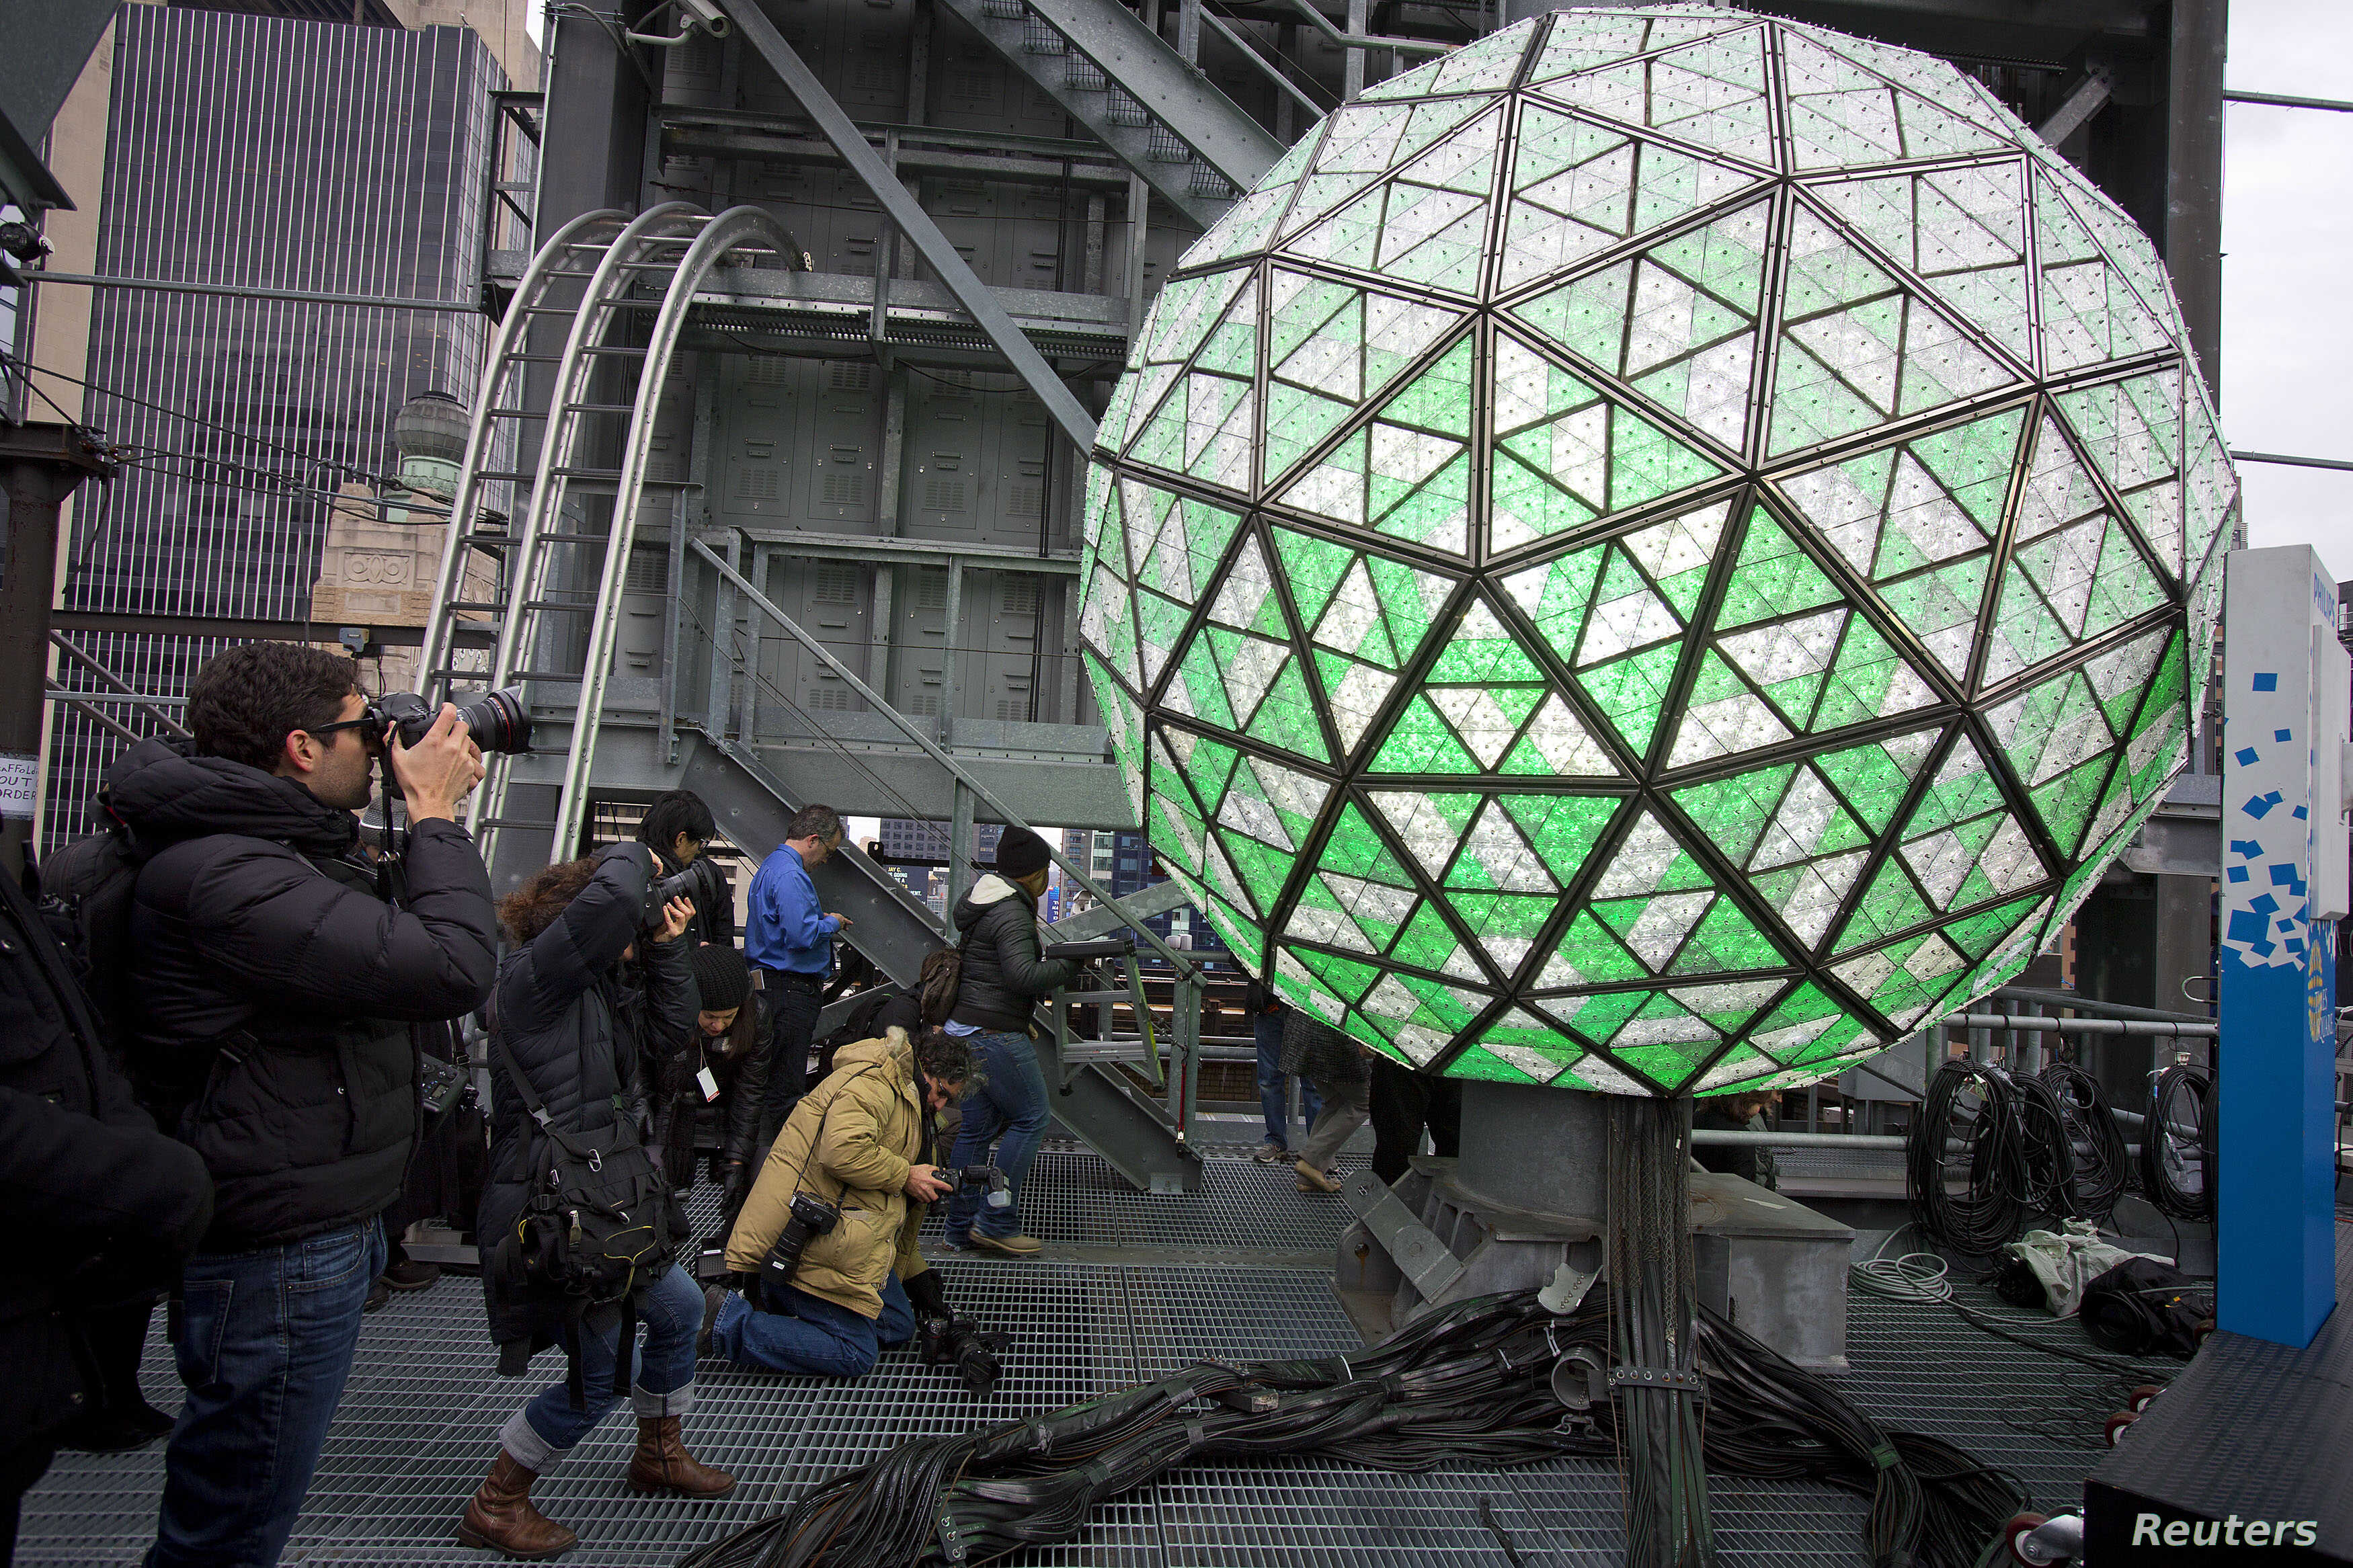 Photographers take photos of the ball that will drop at midnight, ahead of New Year's Eve celebrations in Times Square in New York, December 30, 2013. REUTERS/Carlo Allegri (UNITED STATES - Tags: SOCIETY) - RTX16XJL